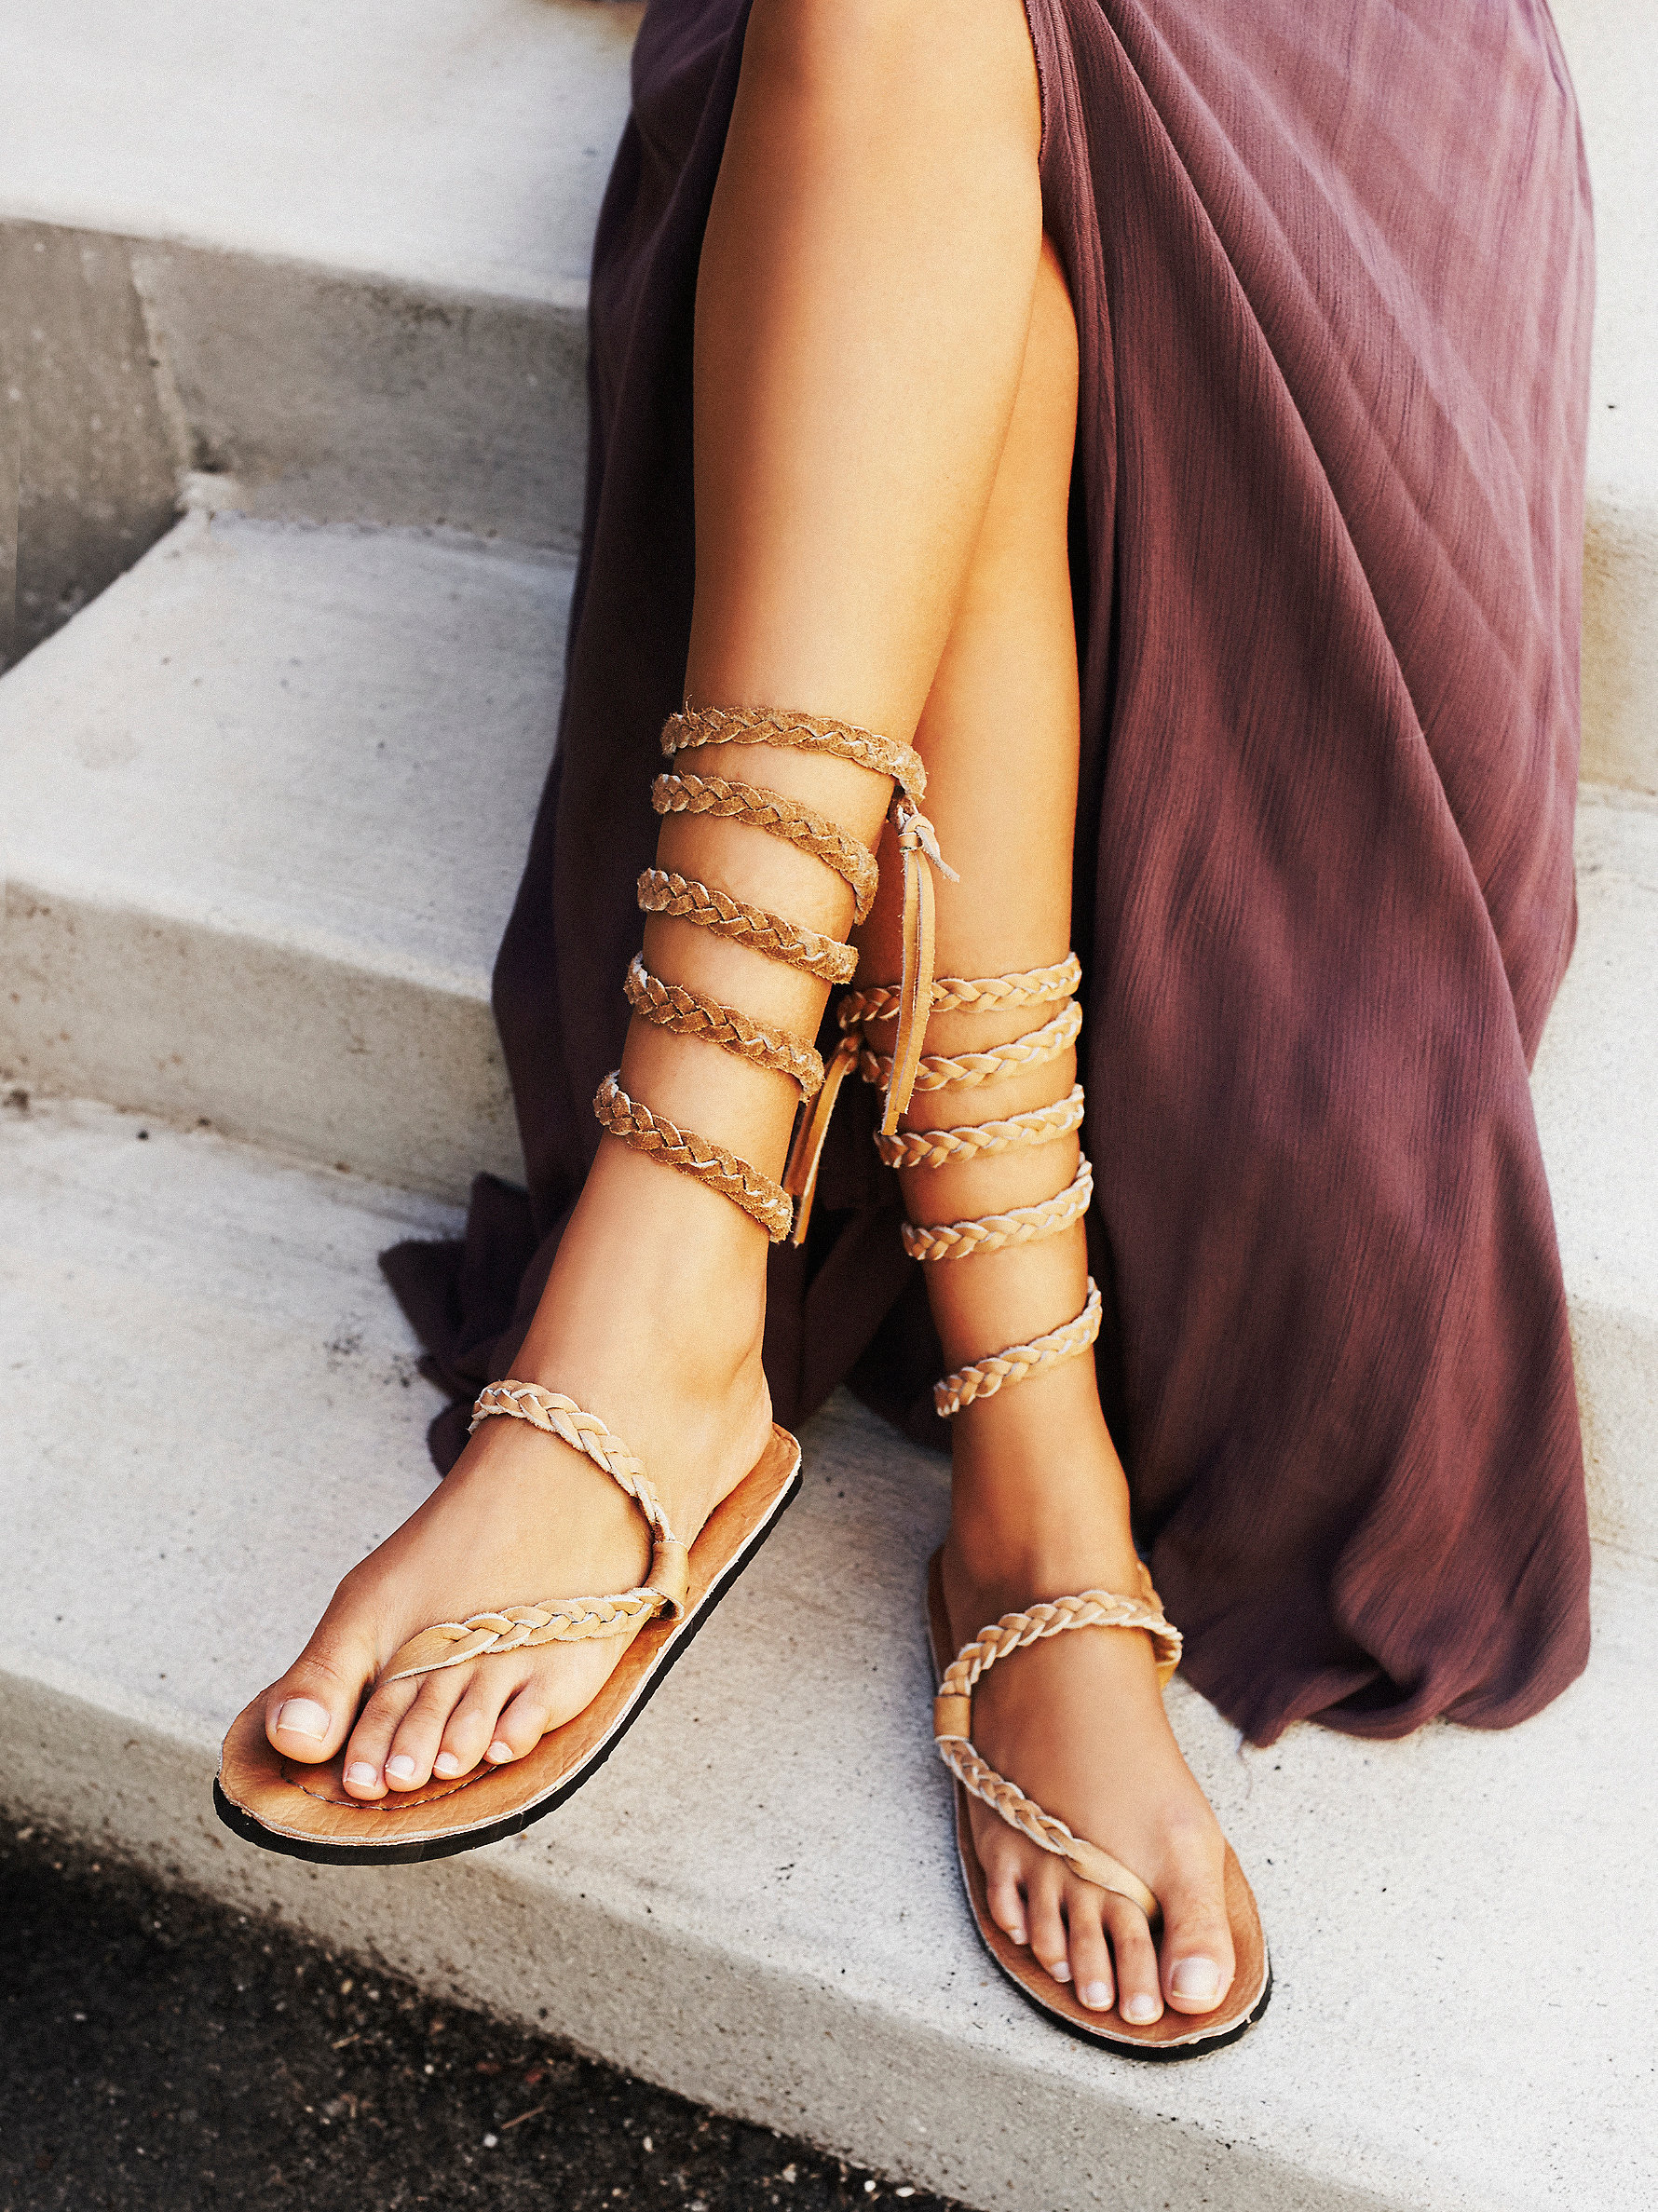 Free People's Sexy Strappy Sandals - Heathermarie Heaton Braided Sandal at Free People Clothing Boutique